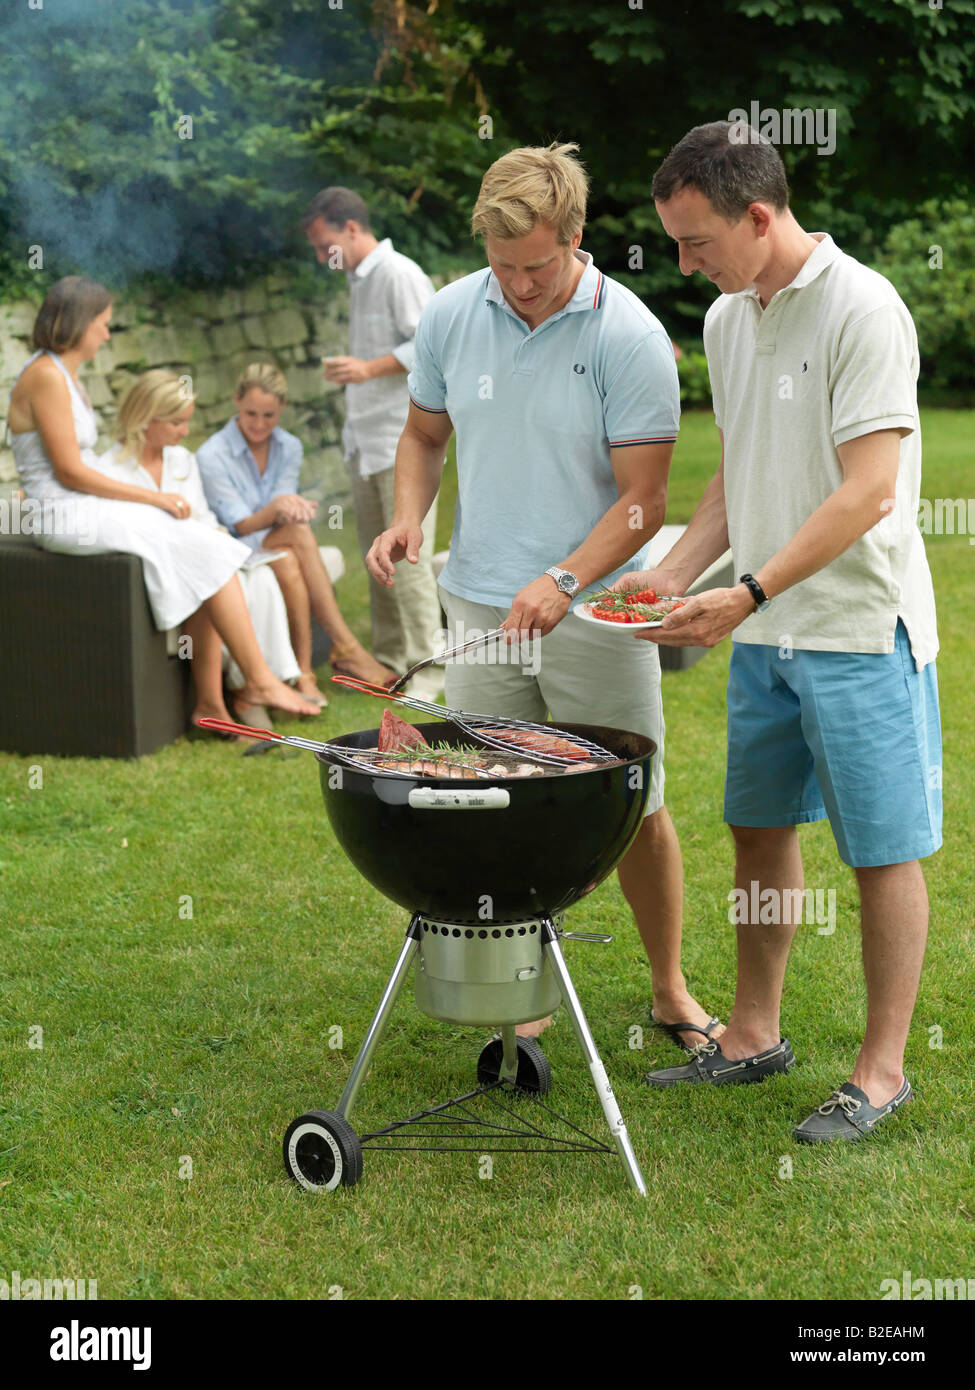 Group of people having barbecue - Stock Image